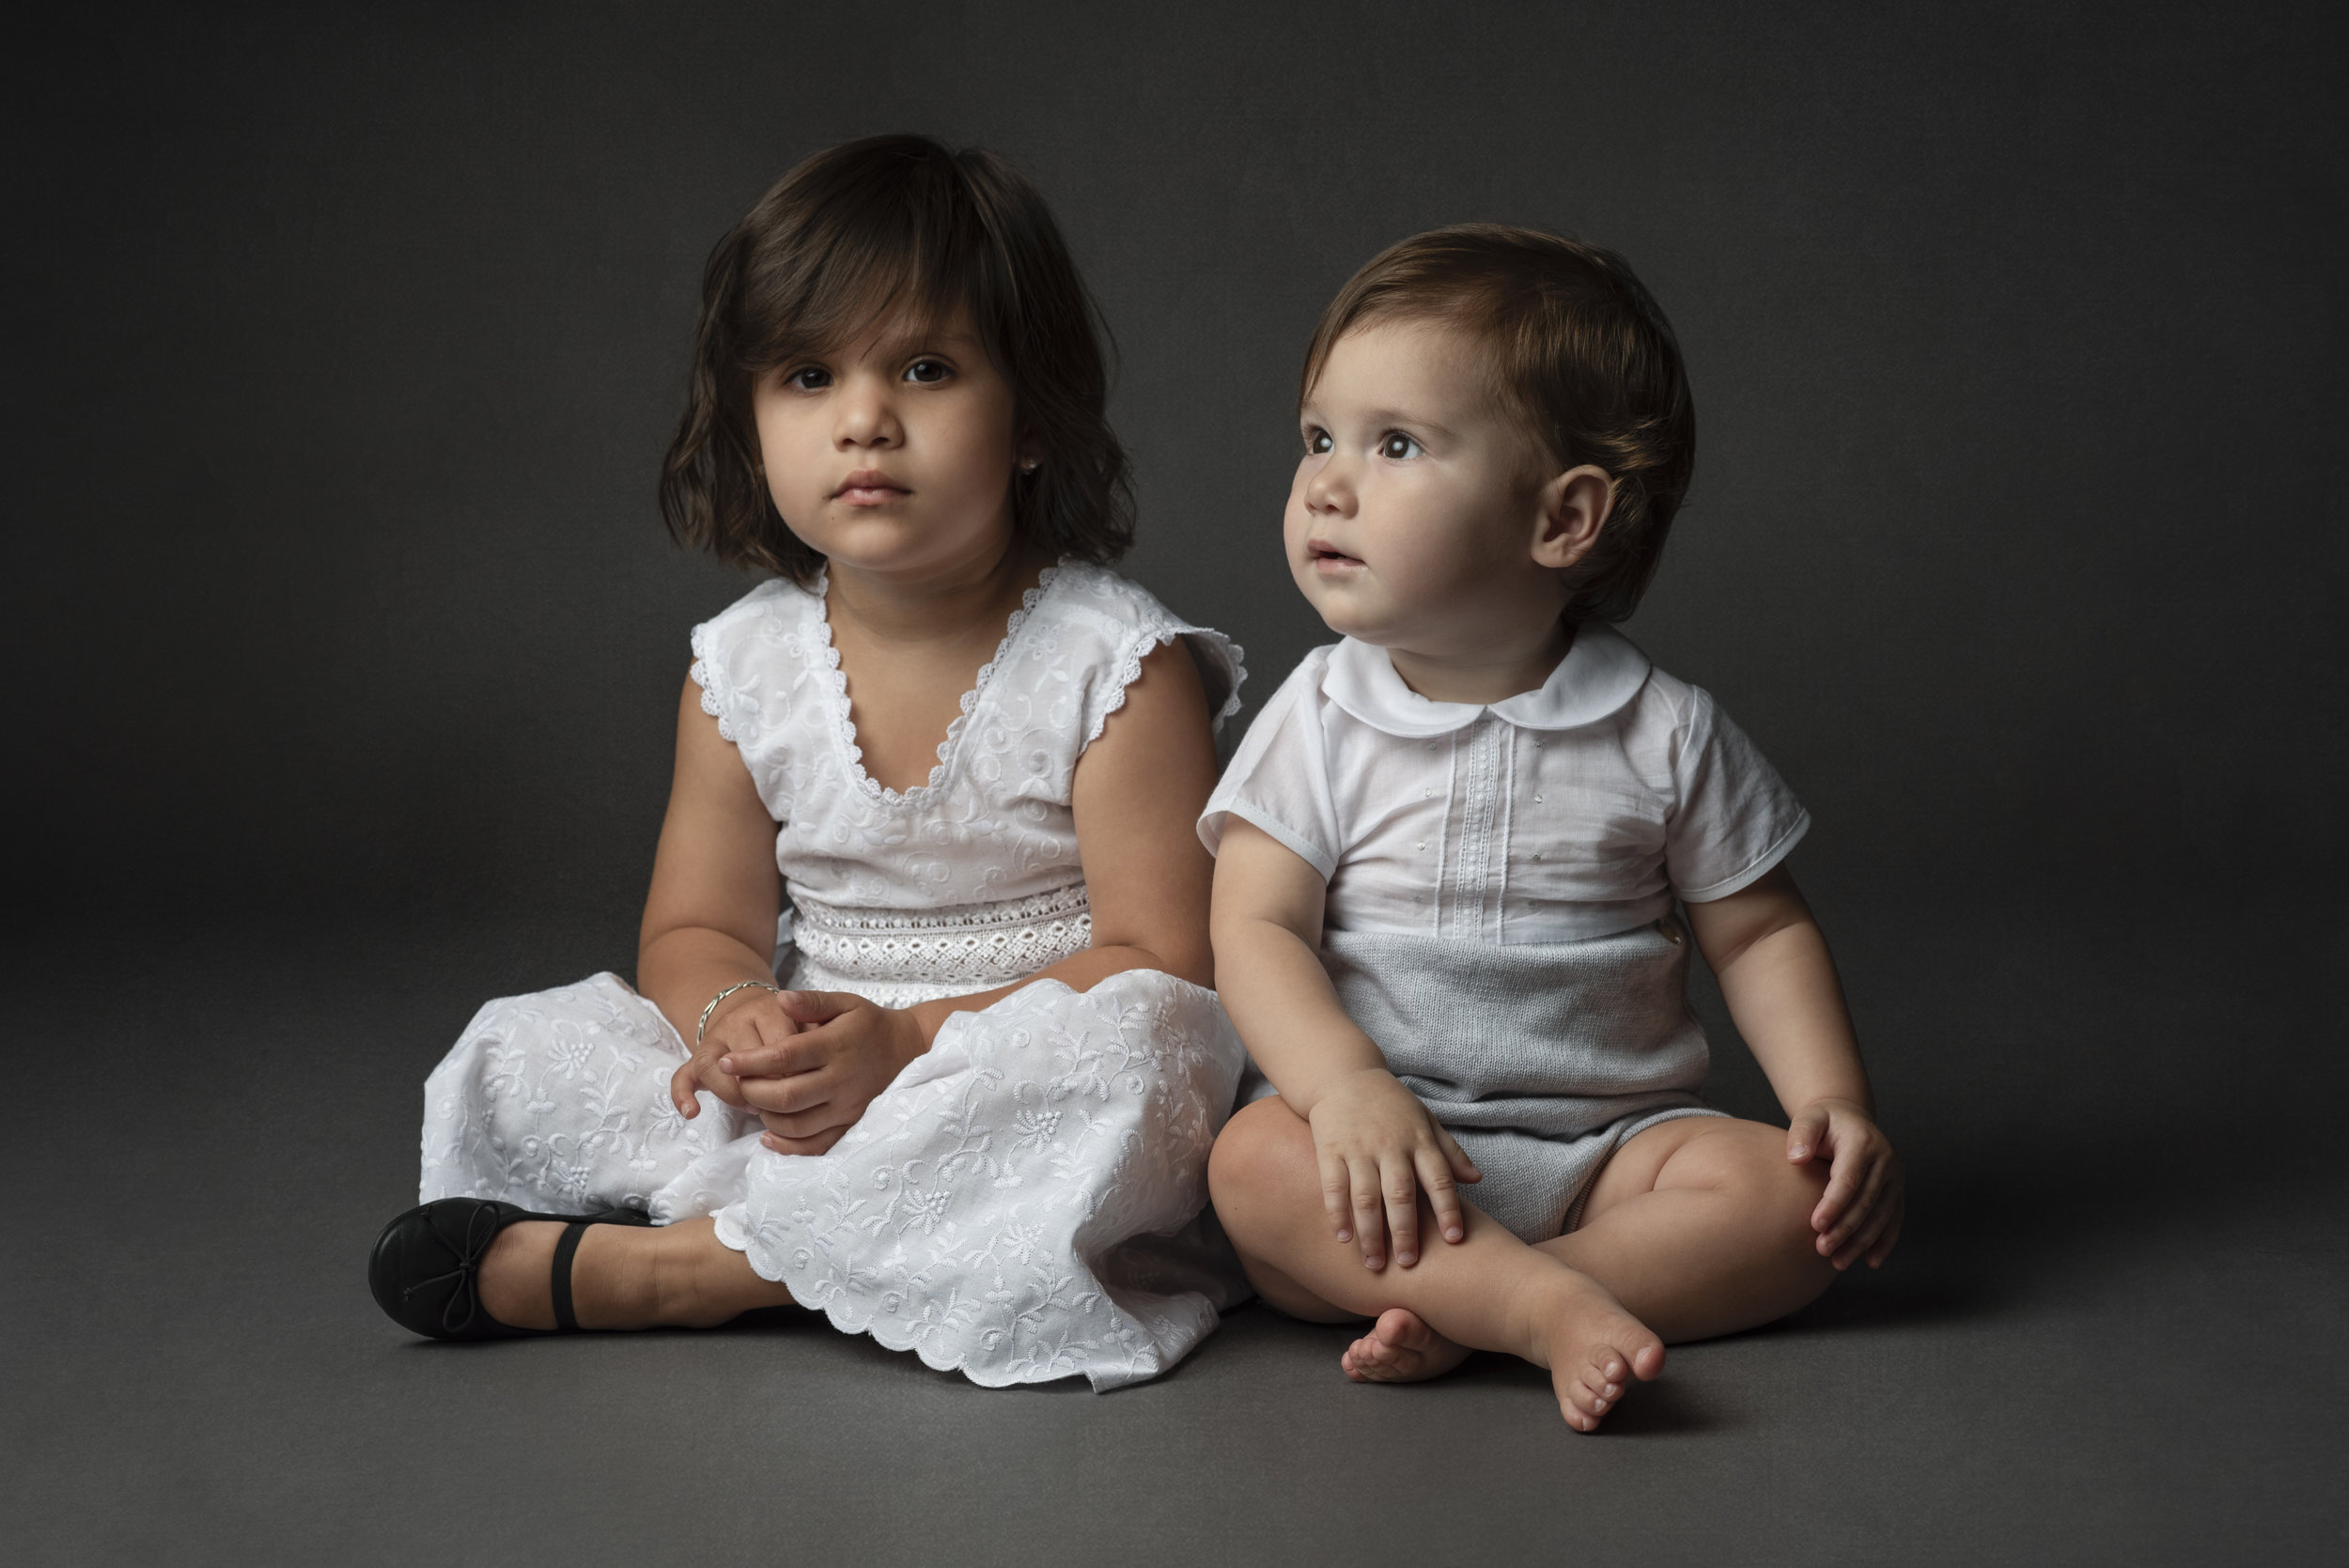 Studio portrait of siblings wearing white and gray